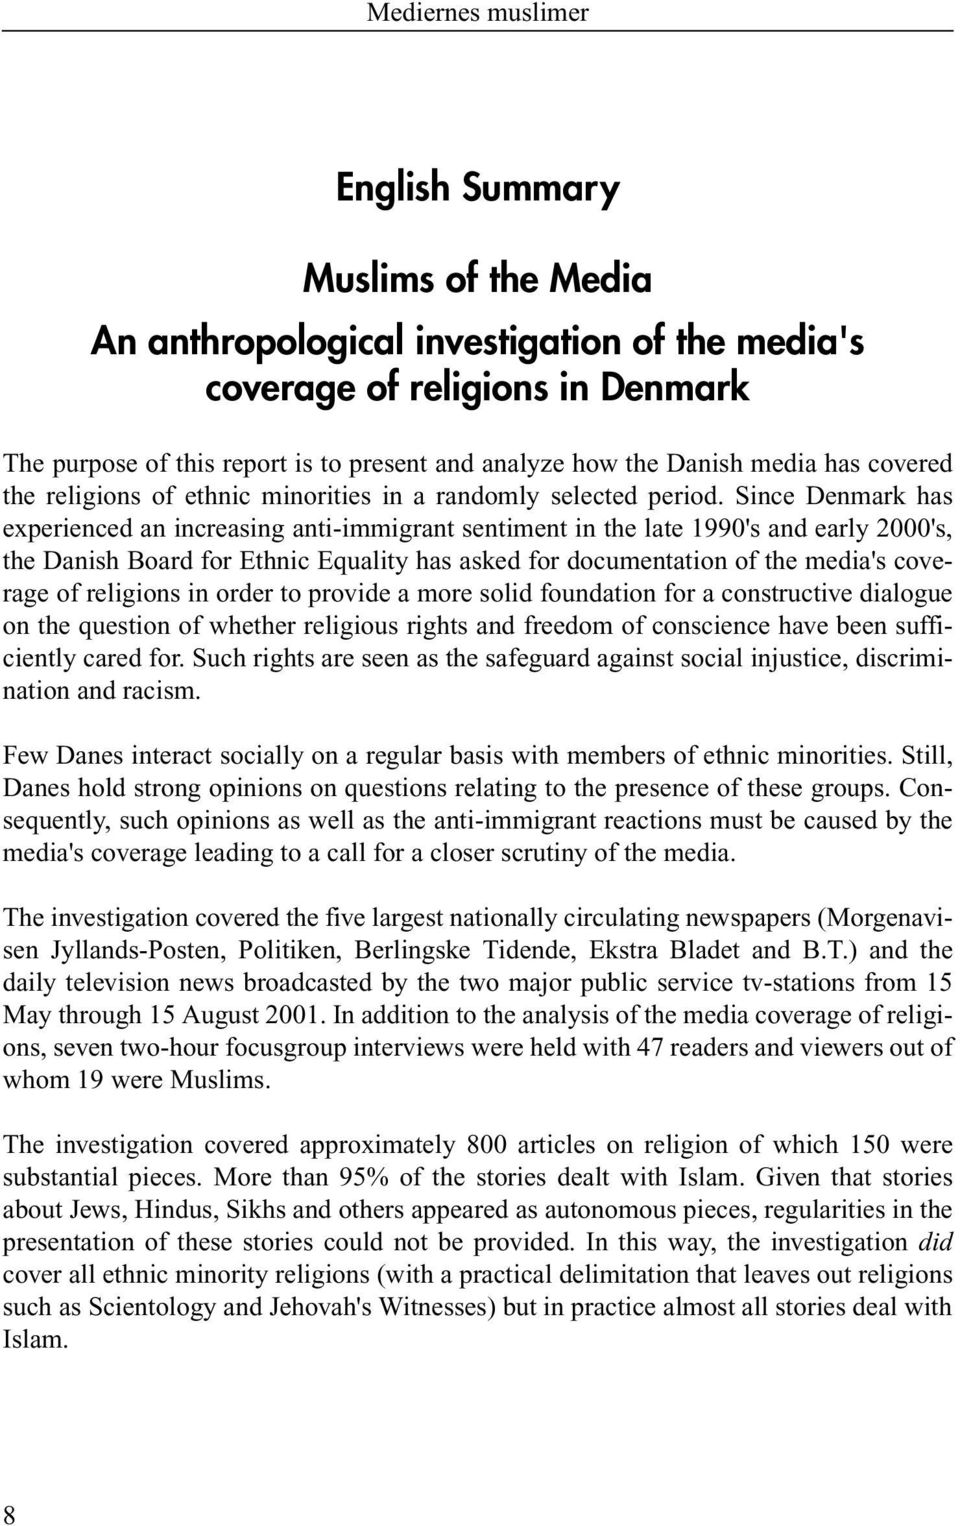 Since Denmark has experienced an increasing anti-immigrant sentiment in the late 1990's and early 2000's, the Danish Board for Ethnic Equality has asked for documentation of the media's coverage of